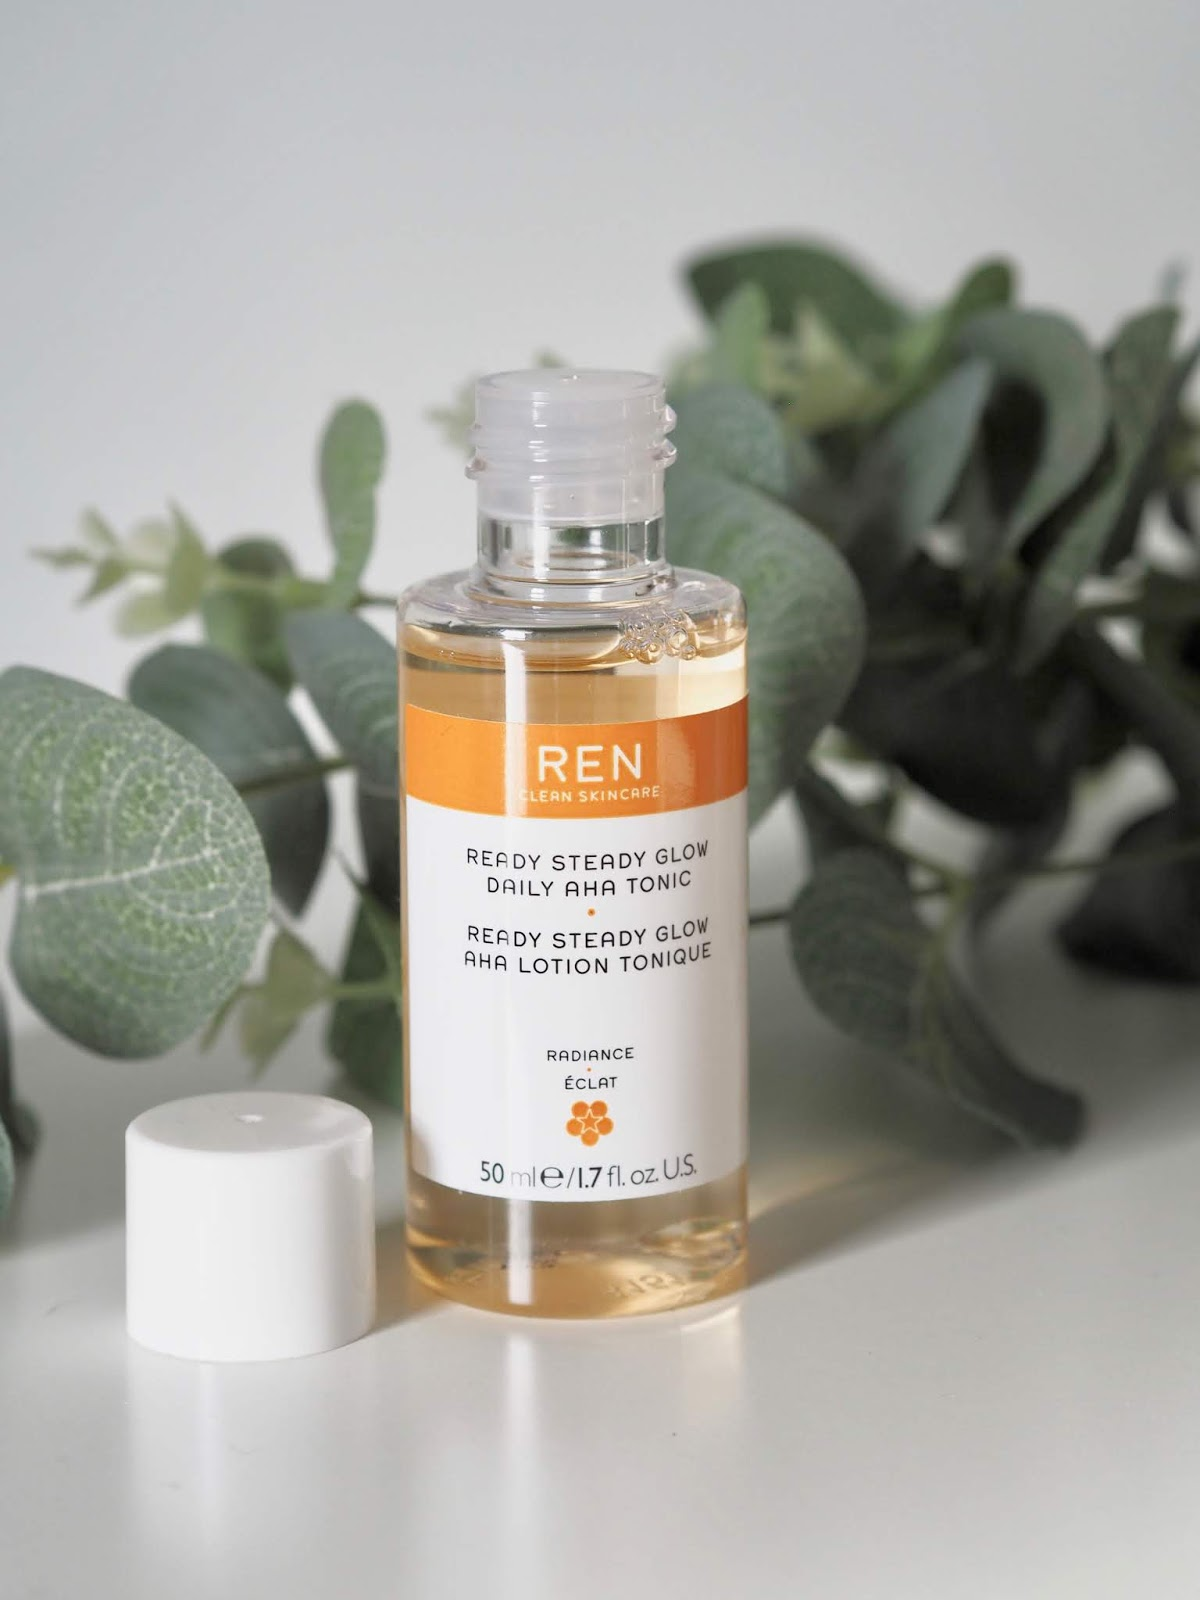 REN ready steady daily AHA tonic for exfoliating and smoother skin